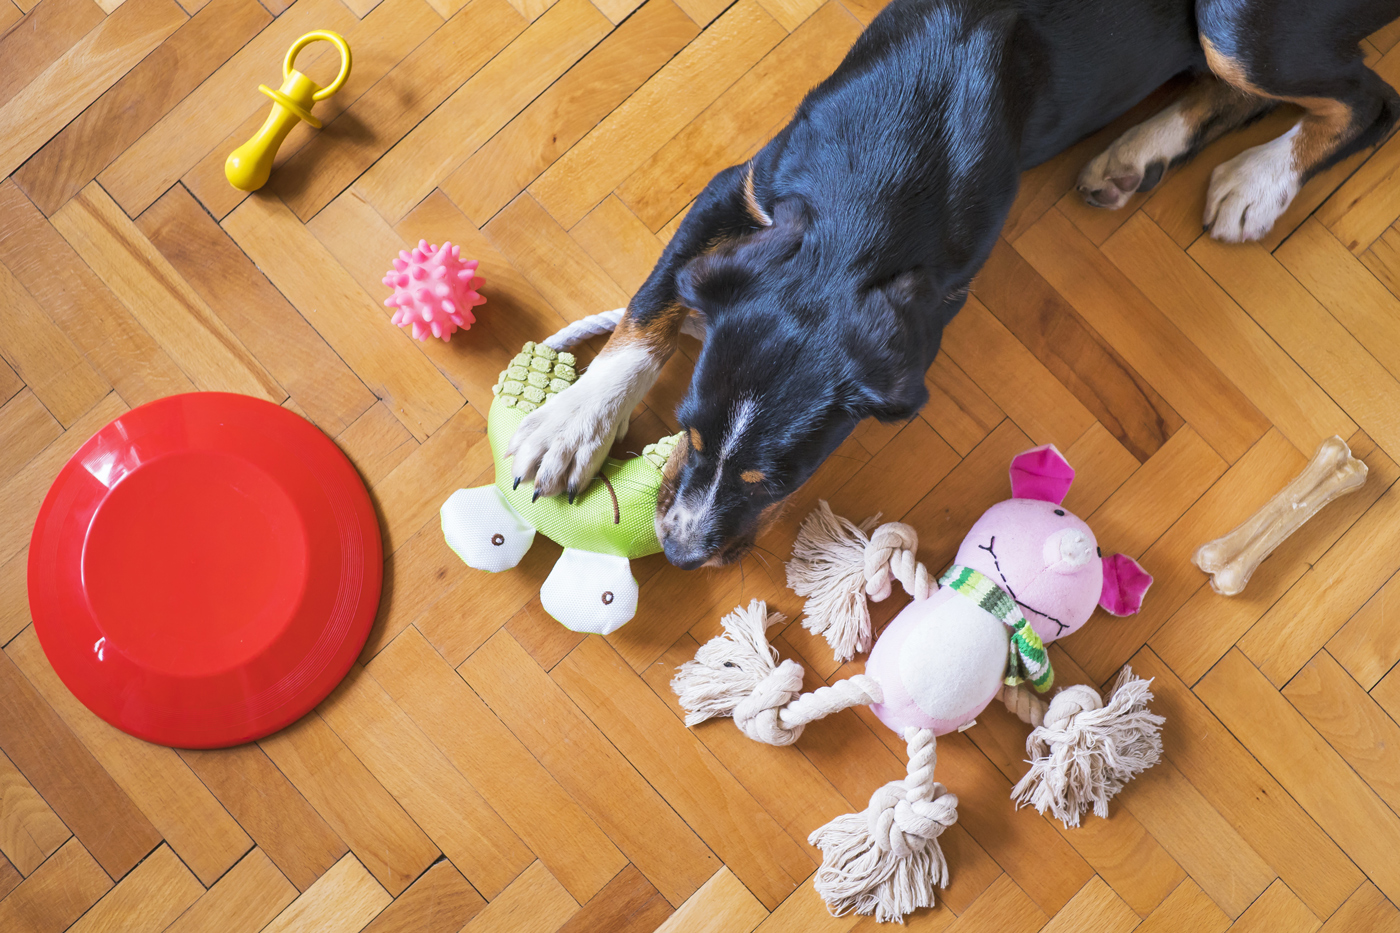 An overhead view of a dog surrounded by toys on a living room floor